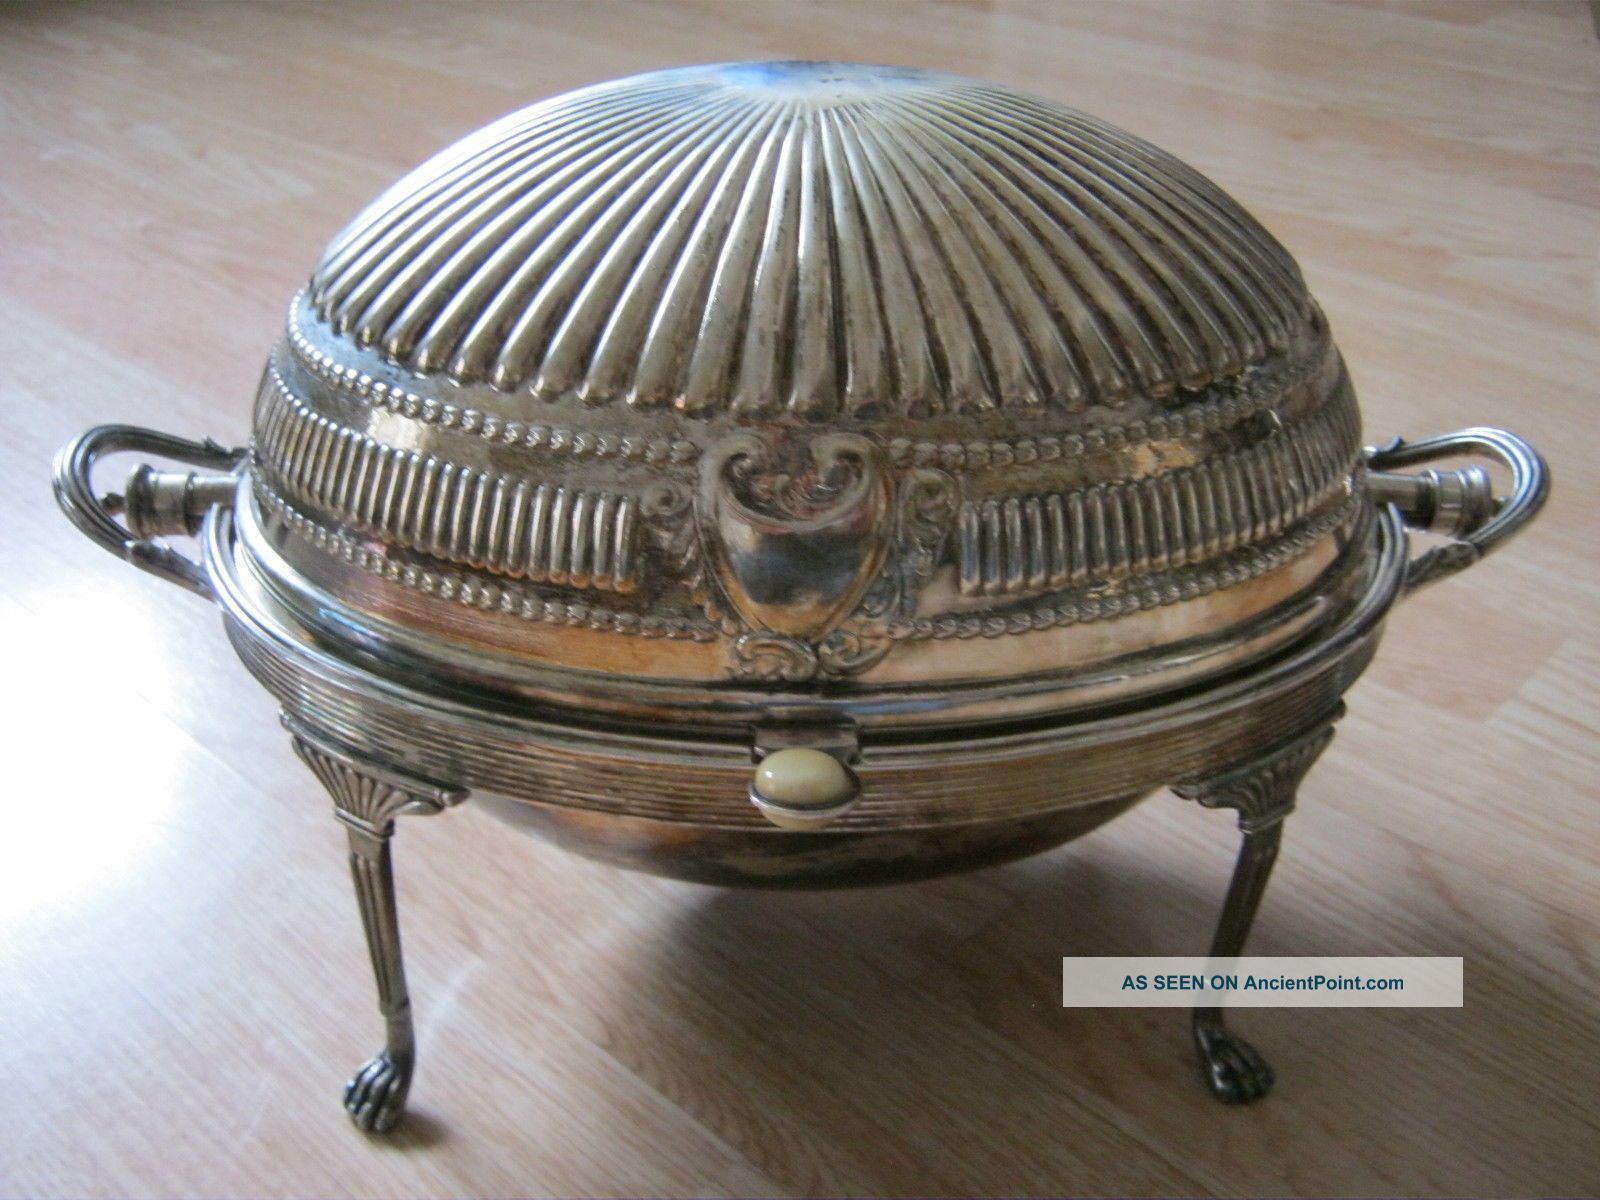 Antique Silver Plate Dome Role Top Victorian Chafing Old 14x8x8 Inche Art Deco Other Antique Silverplate photo